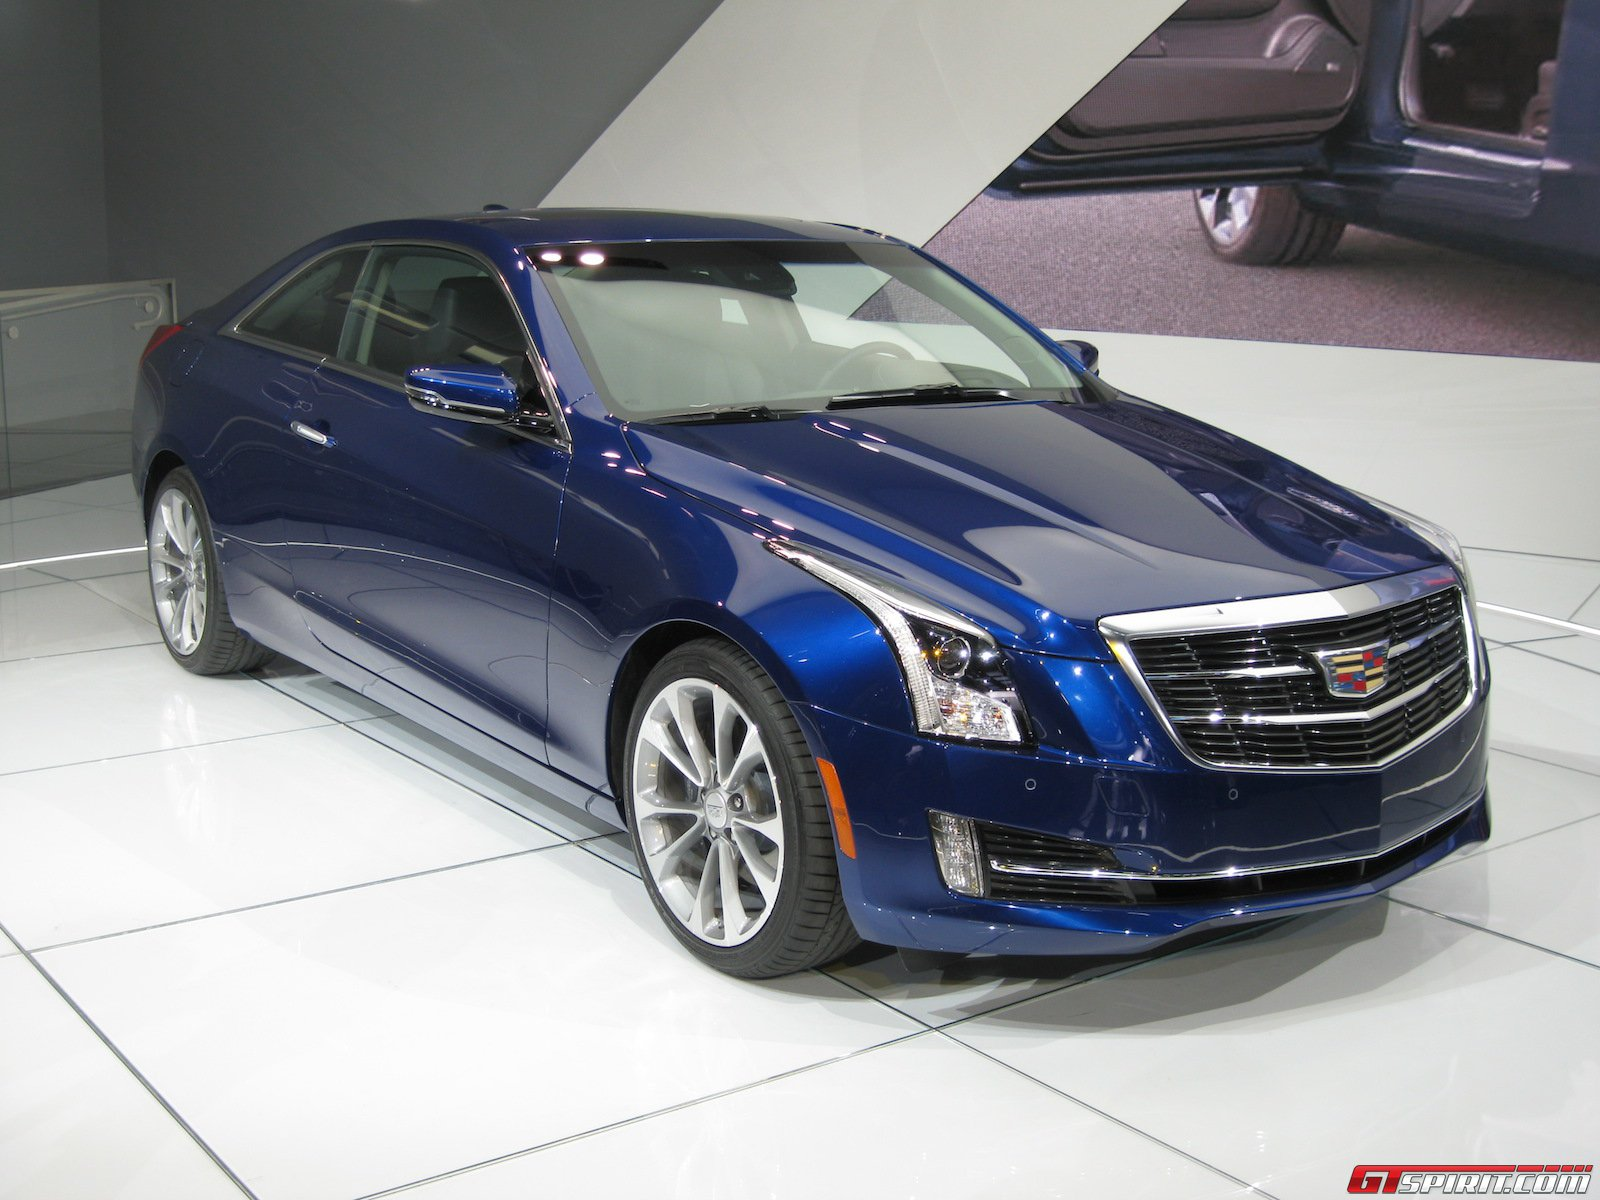 2019 Cadillac Cts V Coupe >> 2019 Cadillac XTS | Car Photos Catalog 2018